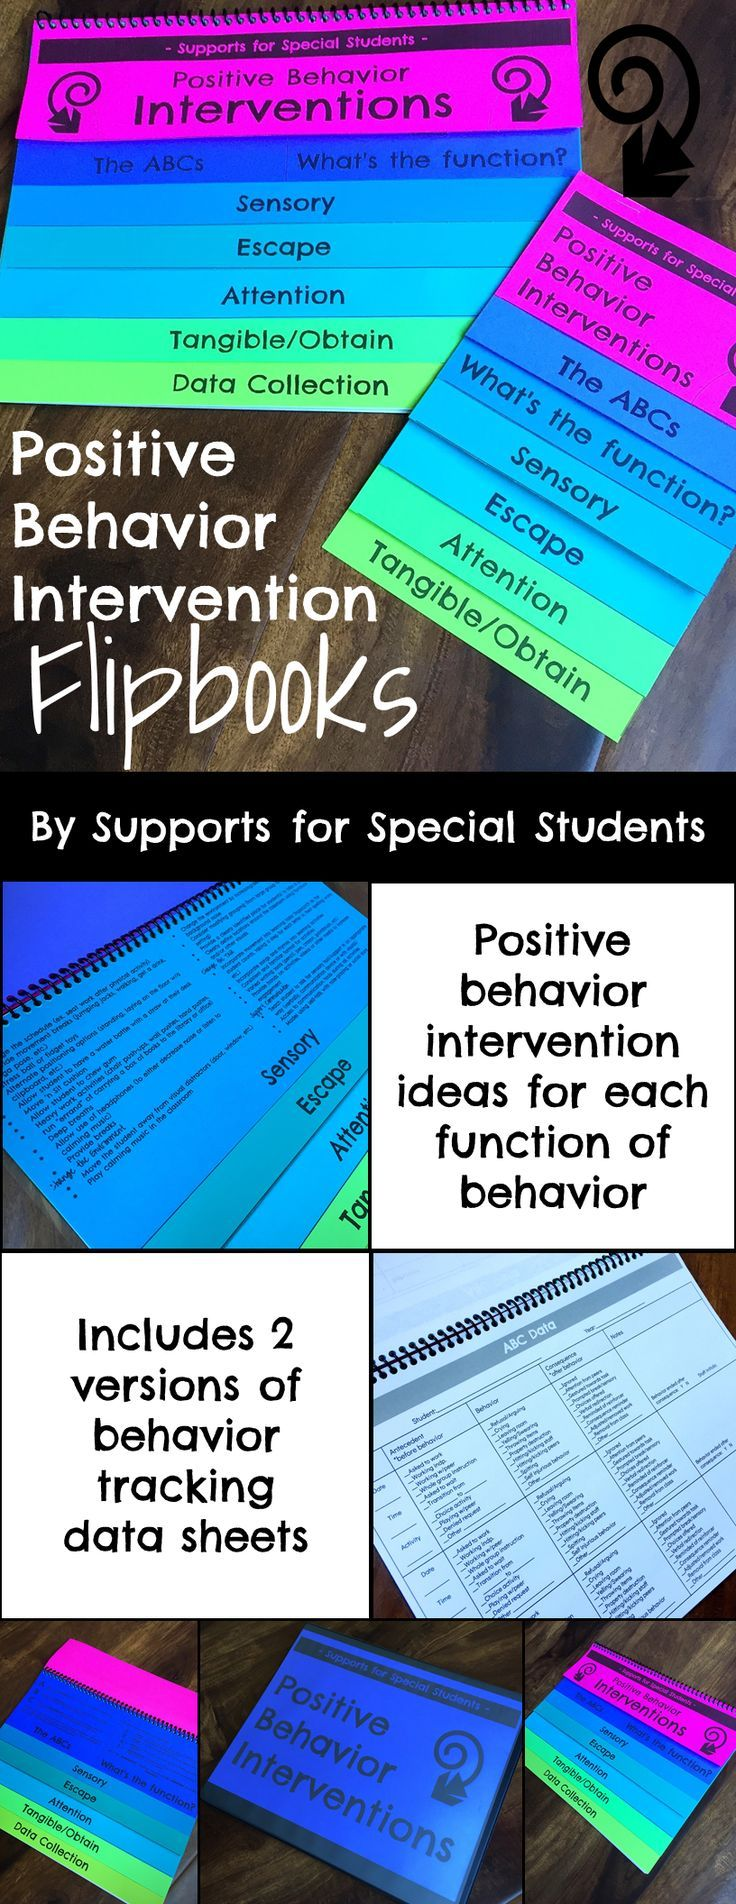 This flipbook is packed full of easy to implement positive behavior supports and interventions! You will find a brief overview of the ABC's (antecedent - behavior - consequence), how to determine the function of behavior, and specific intervention to address each function (sensory, escape, attention, and tangible/obtain).   There are 2 versions of the flipbook included in this download.   Version 1 is a half page version that provides quick access to intervention ideas. It is perfect for…